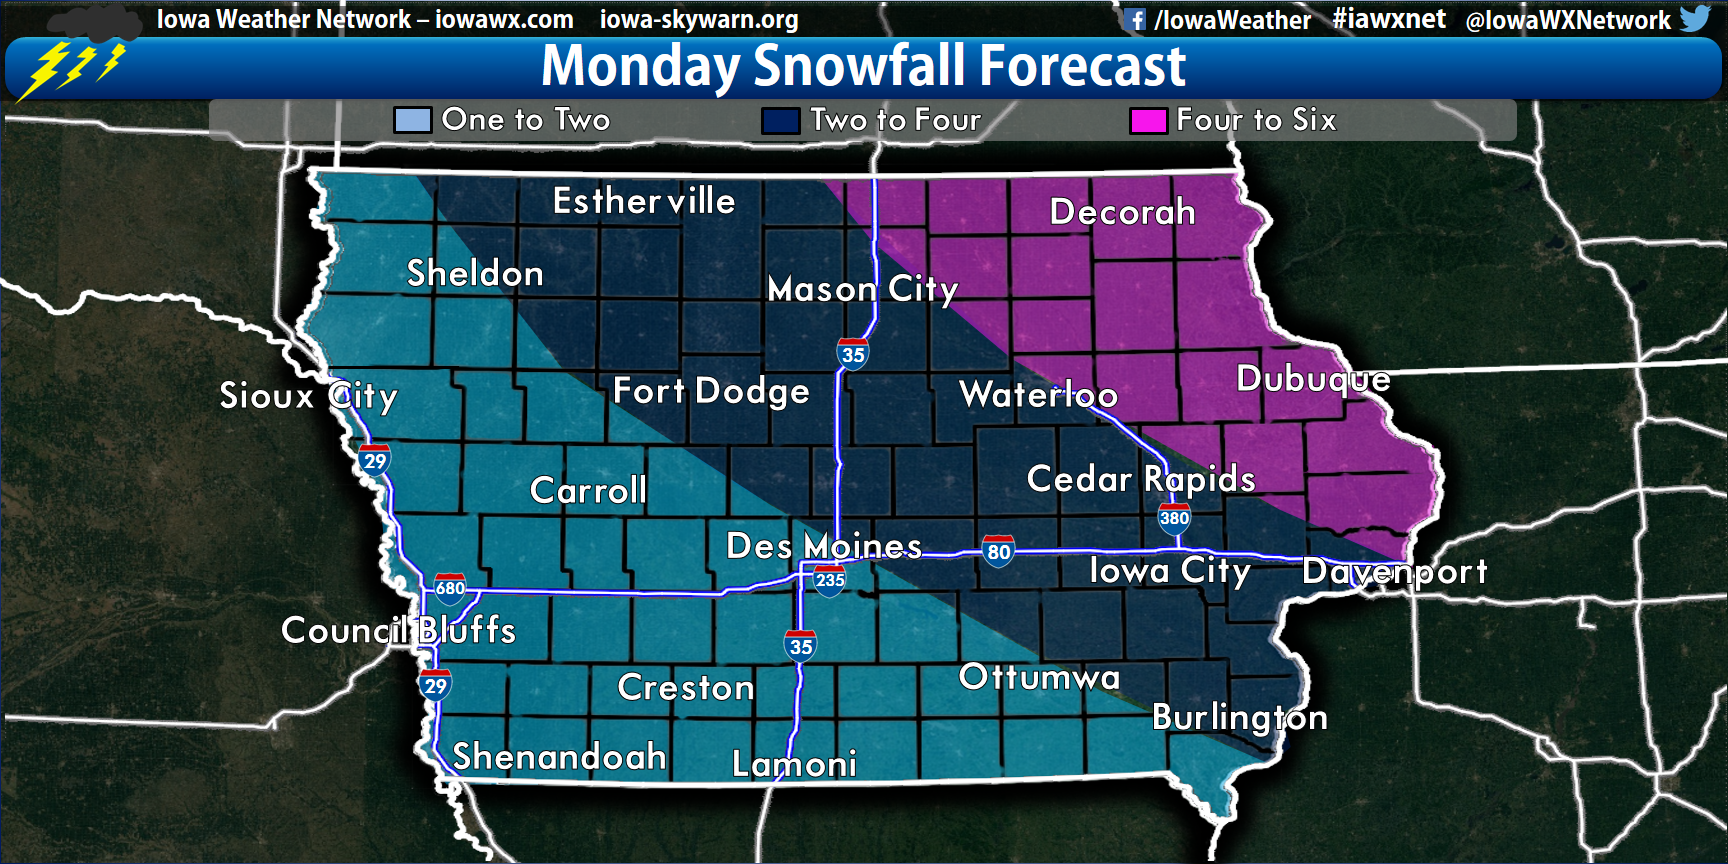 Snow Amounts In Iowa 2013 And 2014